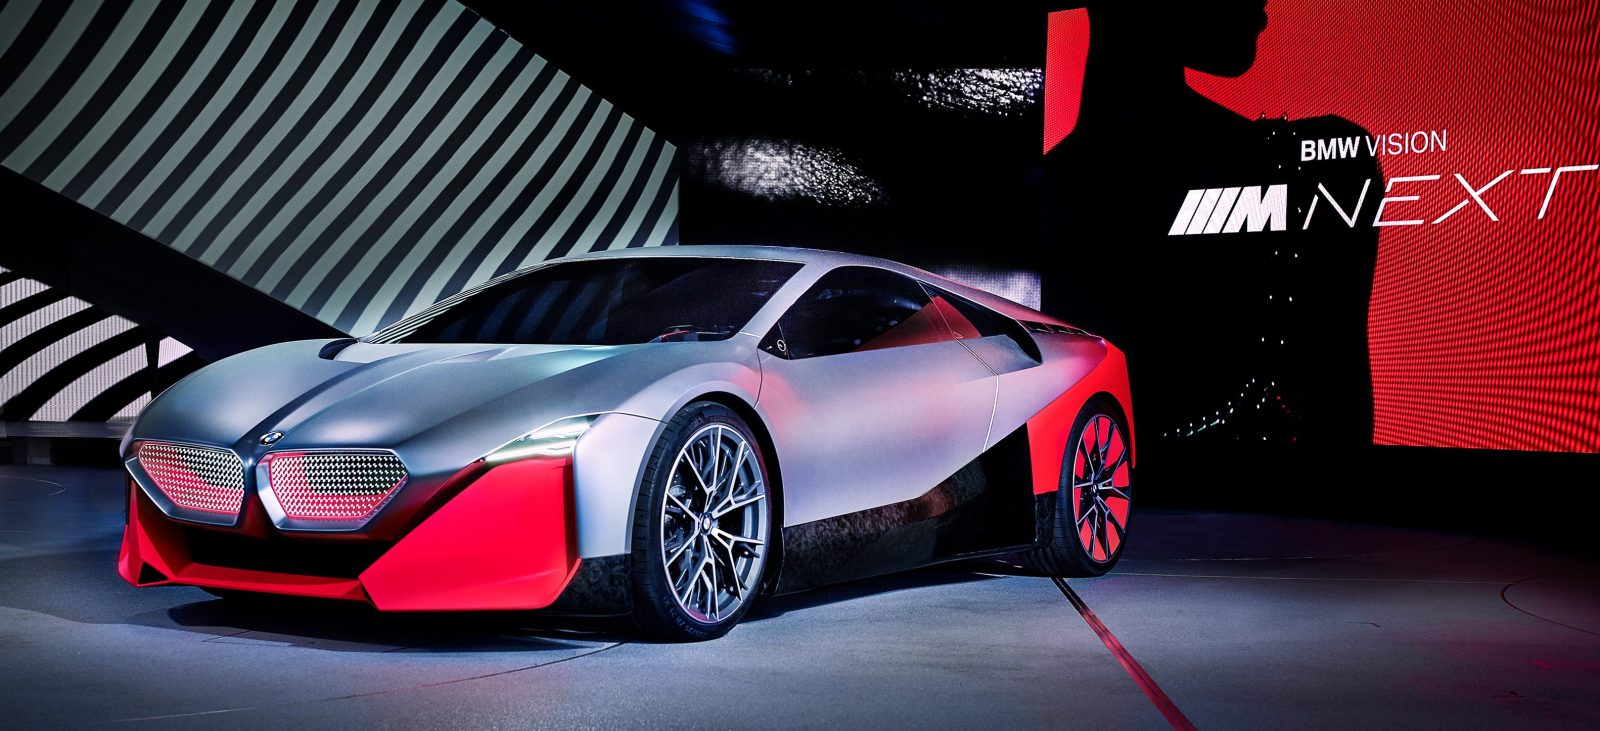 BMW unveils electric concept that looks like next-gen i8 sports car